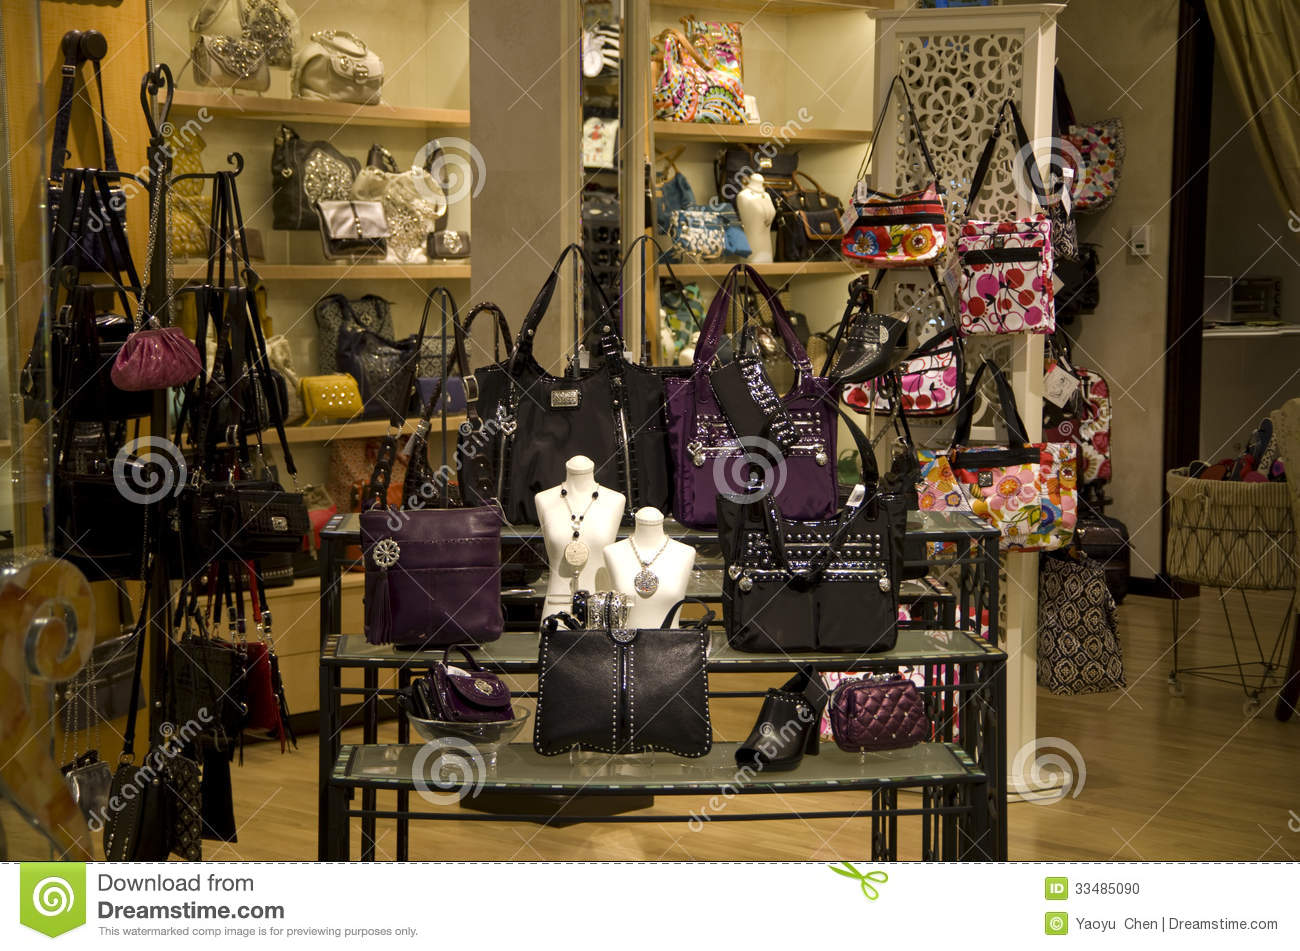 Shoes online. Stores that sell michael kors handbags